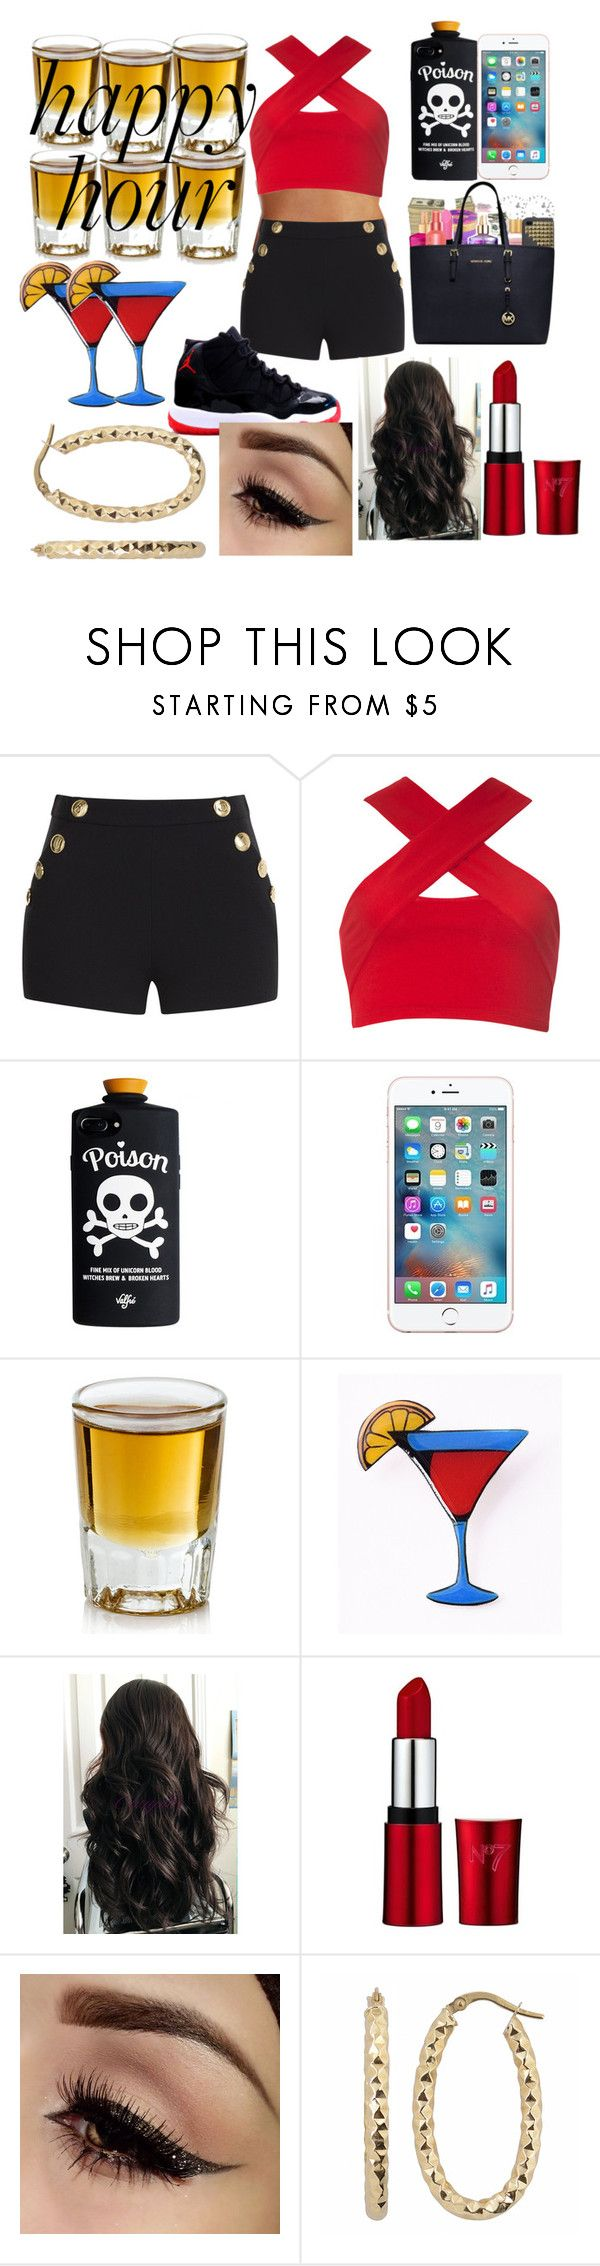 """""""HAPPY HOUR NINGAS IN A RED SUIT"""" by lilzaddyriah ❤ liked on Polyvore featuring Boutique Moschino, Motel and Fremada"""